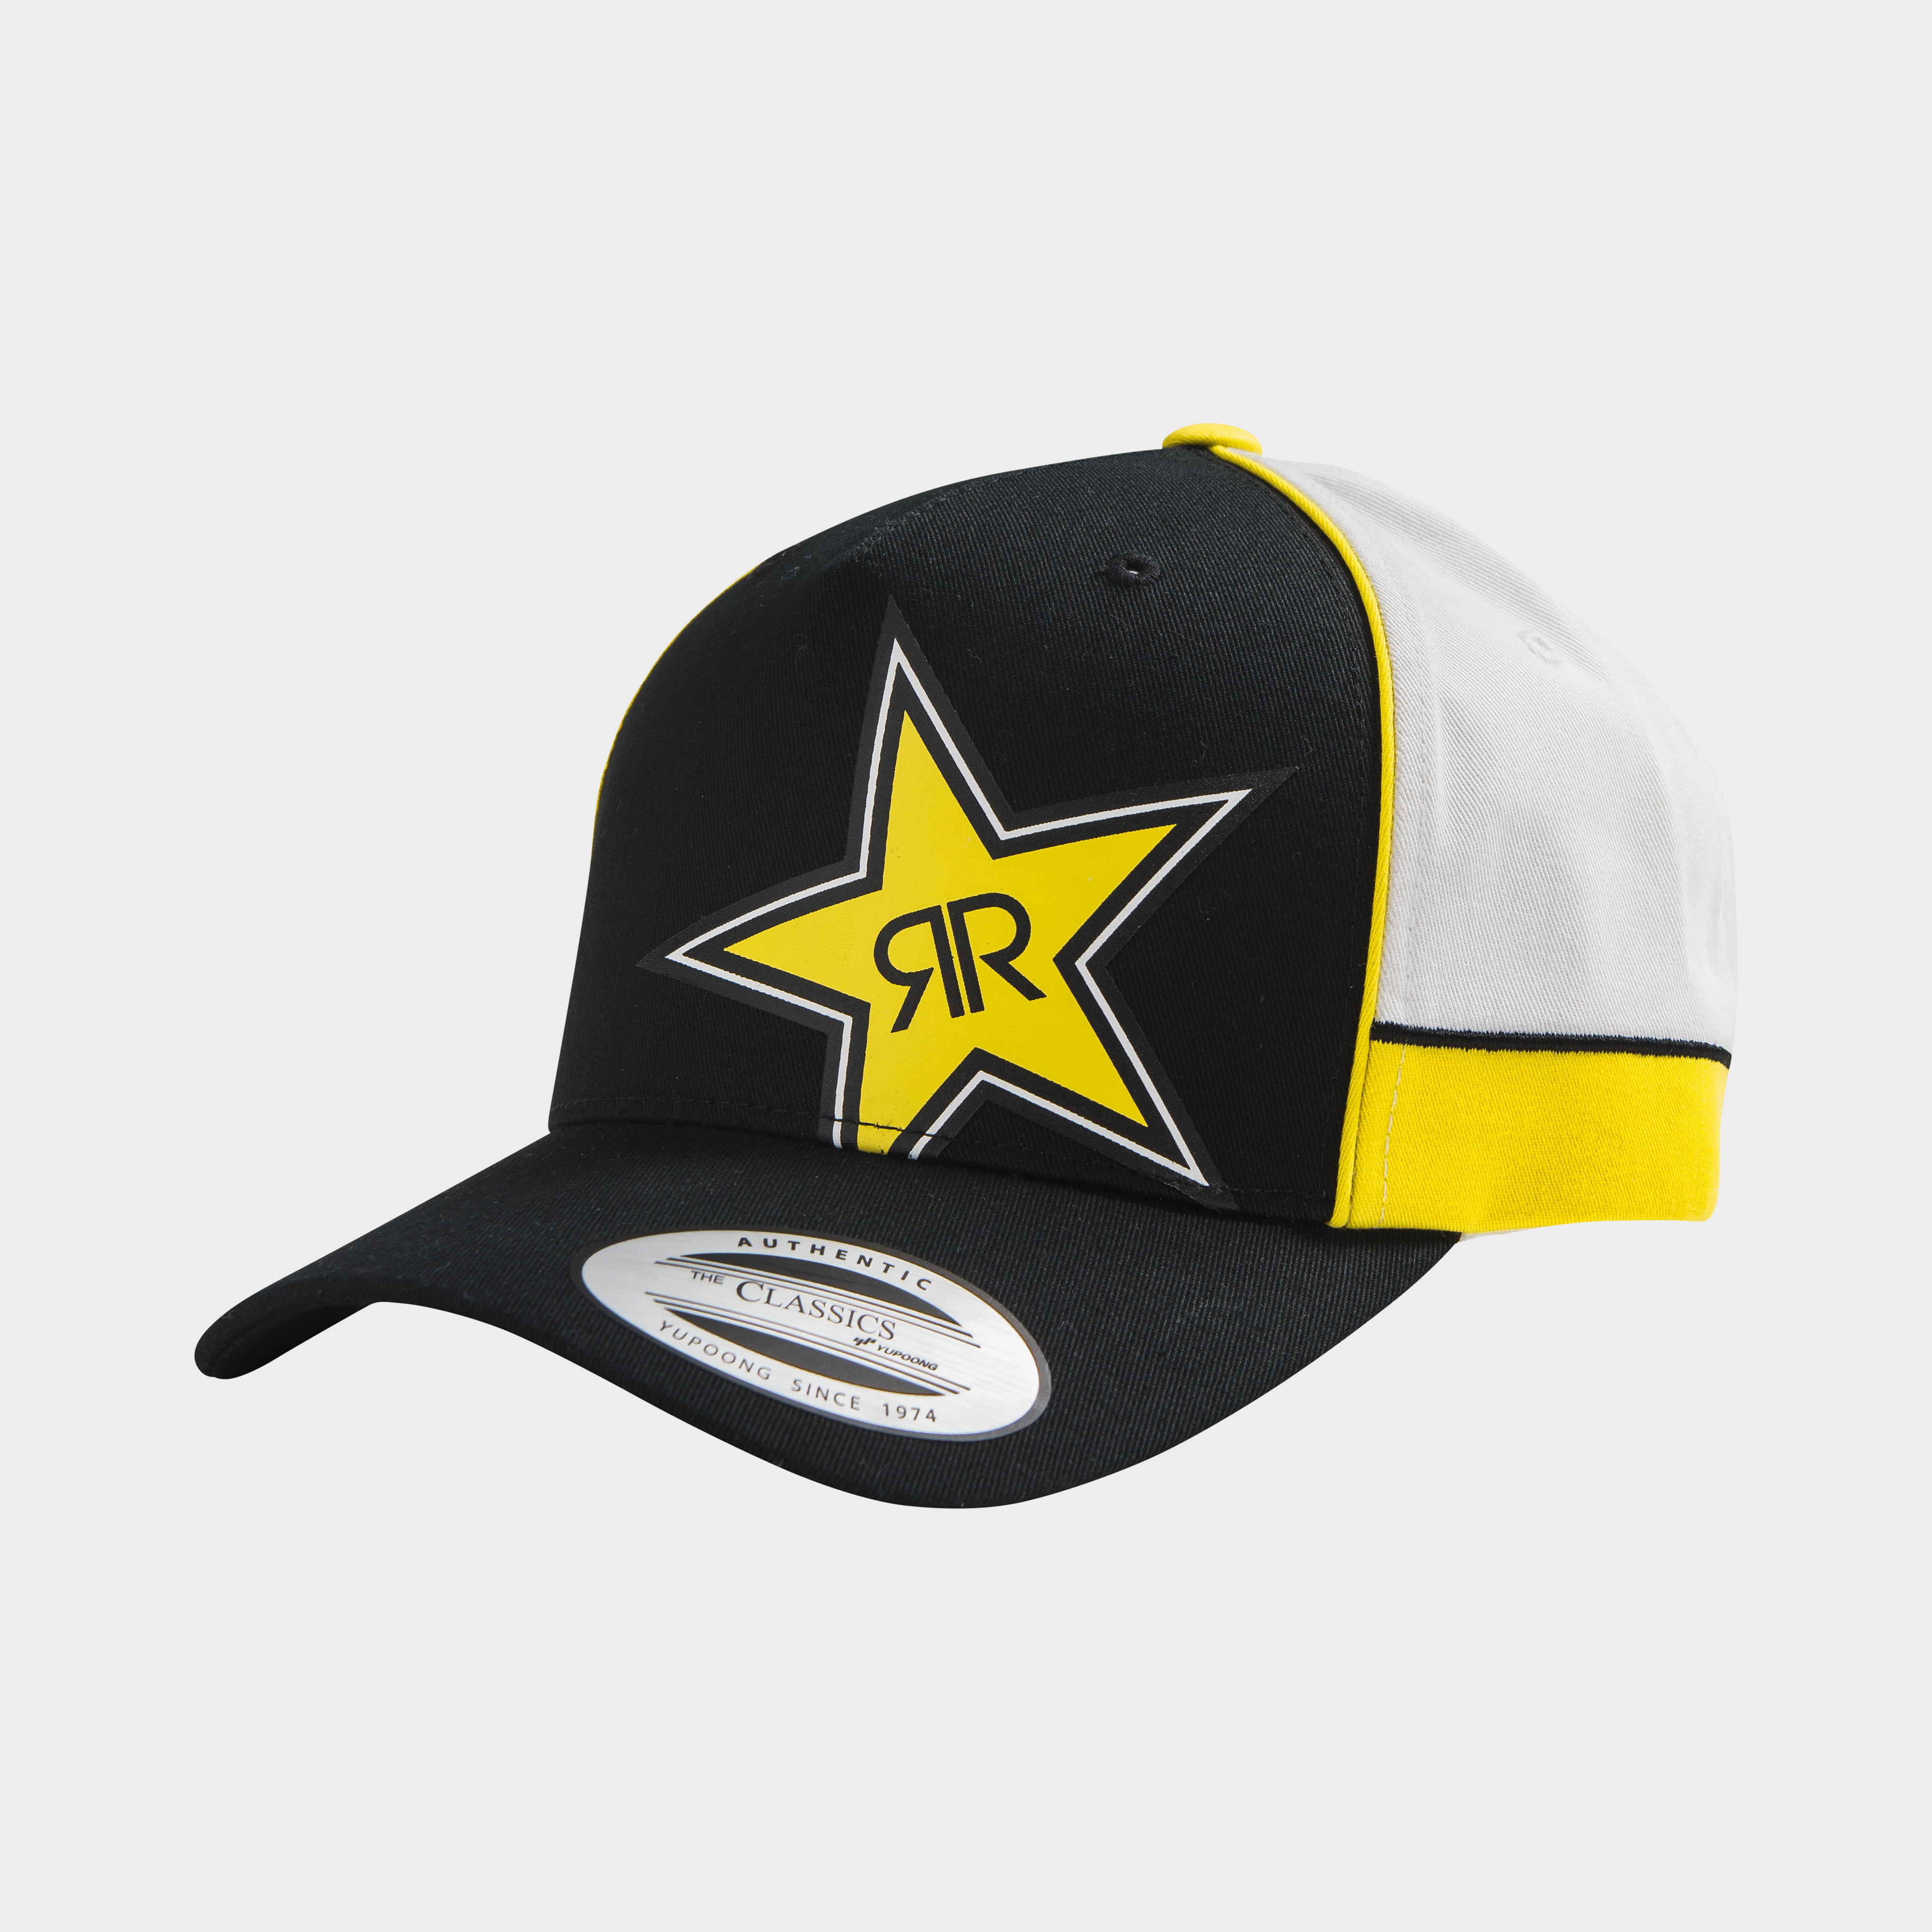 rockstar energy husqvarna factory racing replica collection team cap